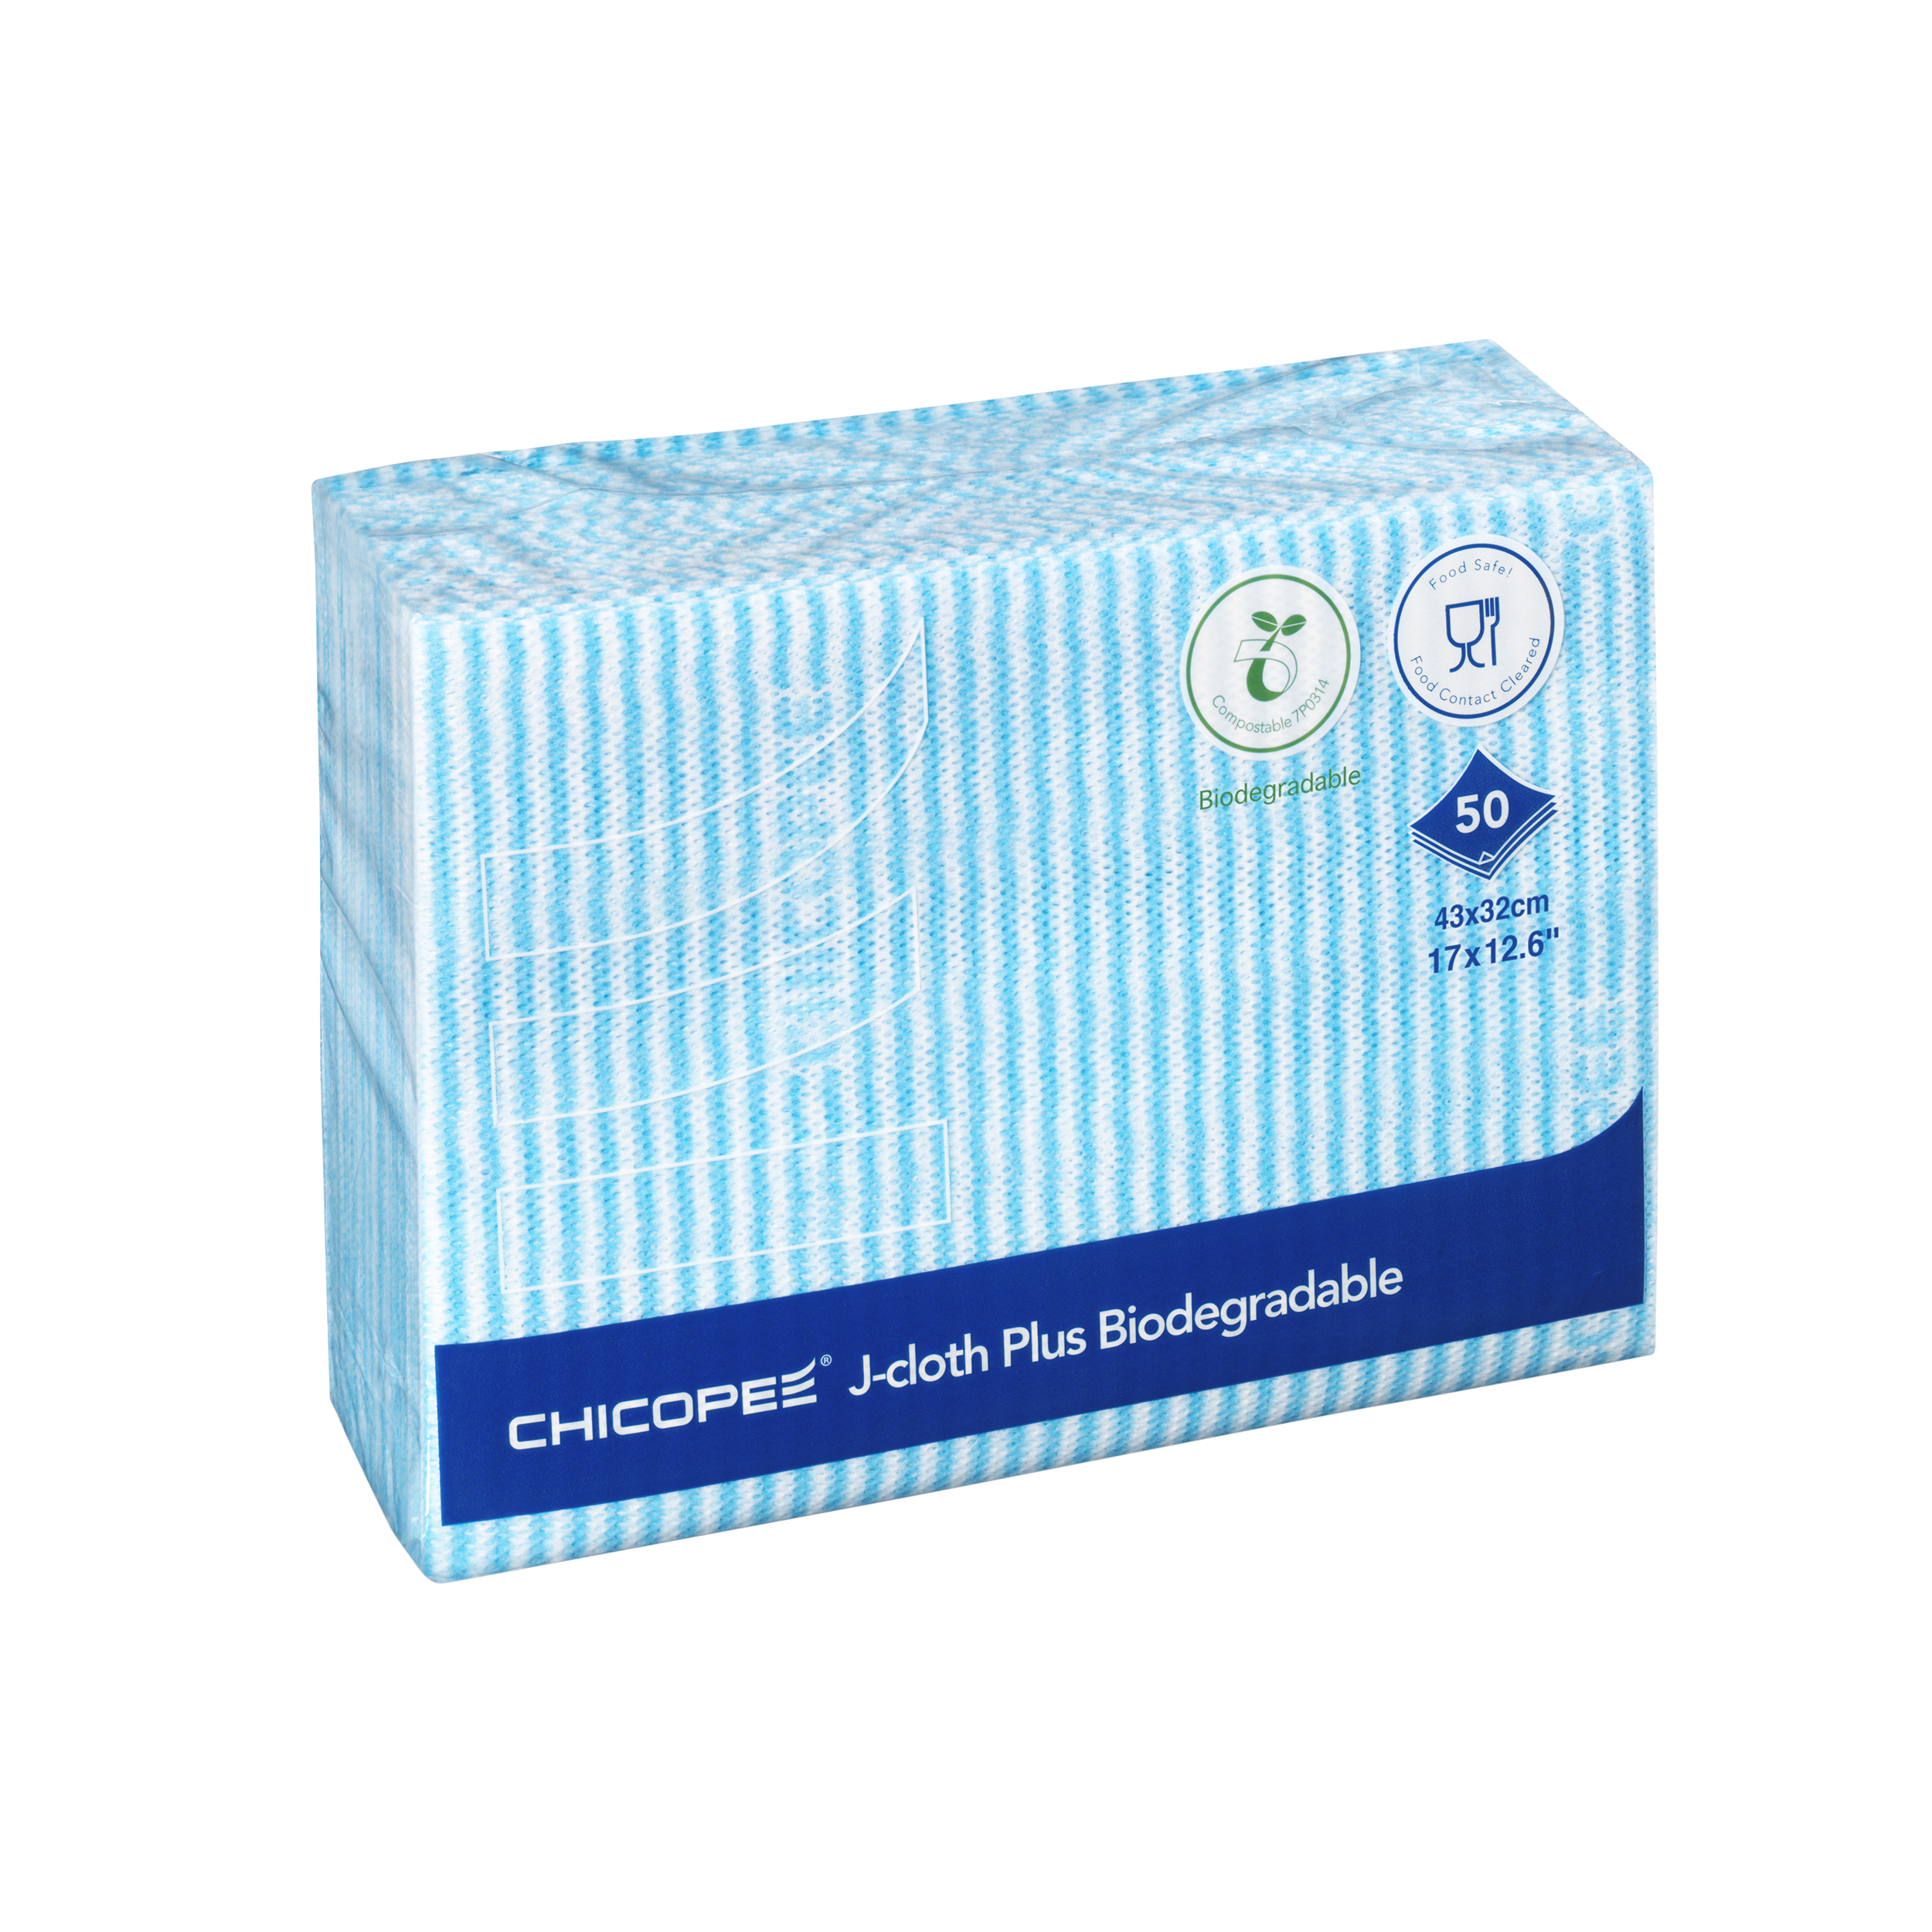 Cloths / Dusters / Scourers / Sponges Chicopee J-Cloth Plus Biodegradable 430x320mm Blue Ref 0707117 Pack 50